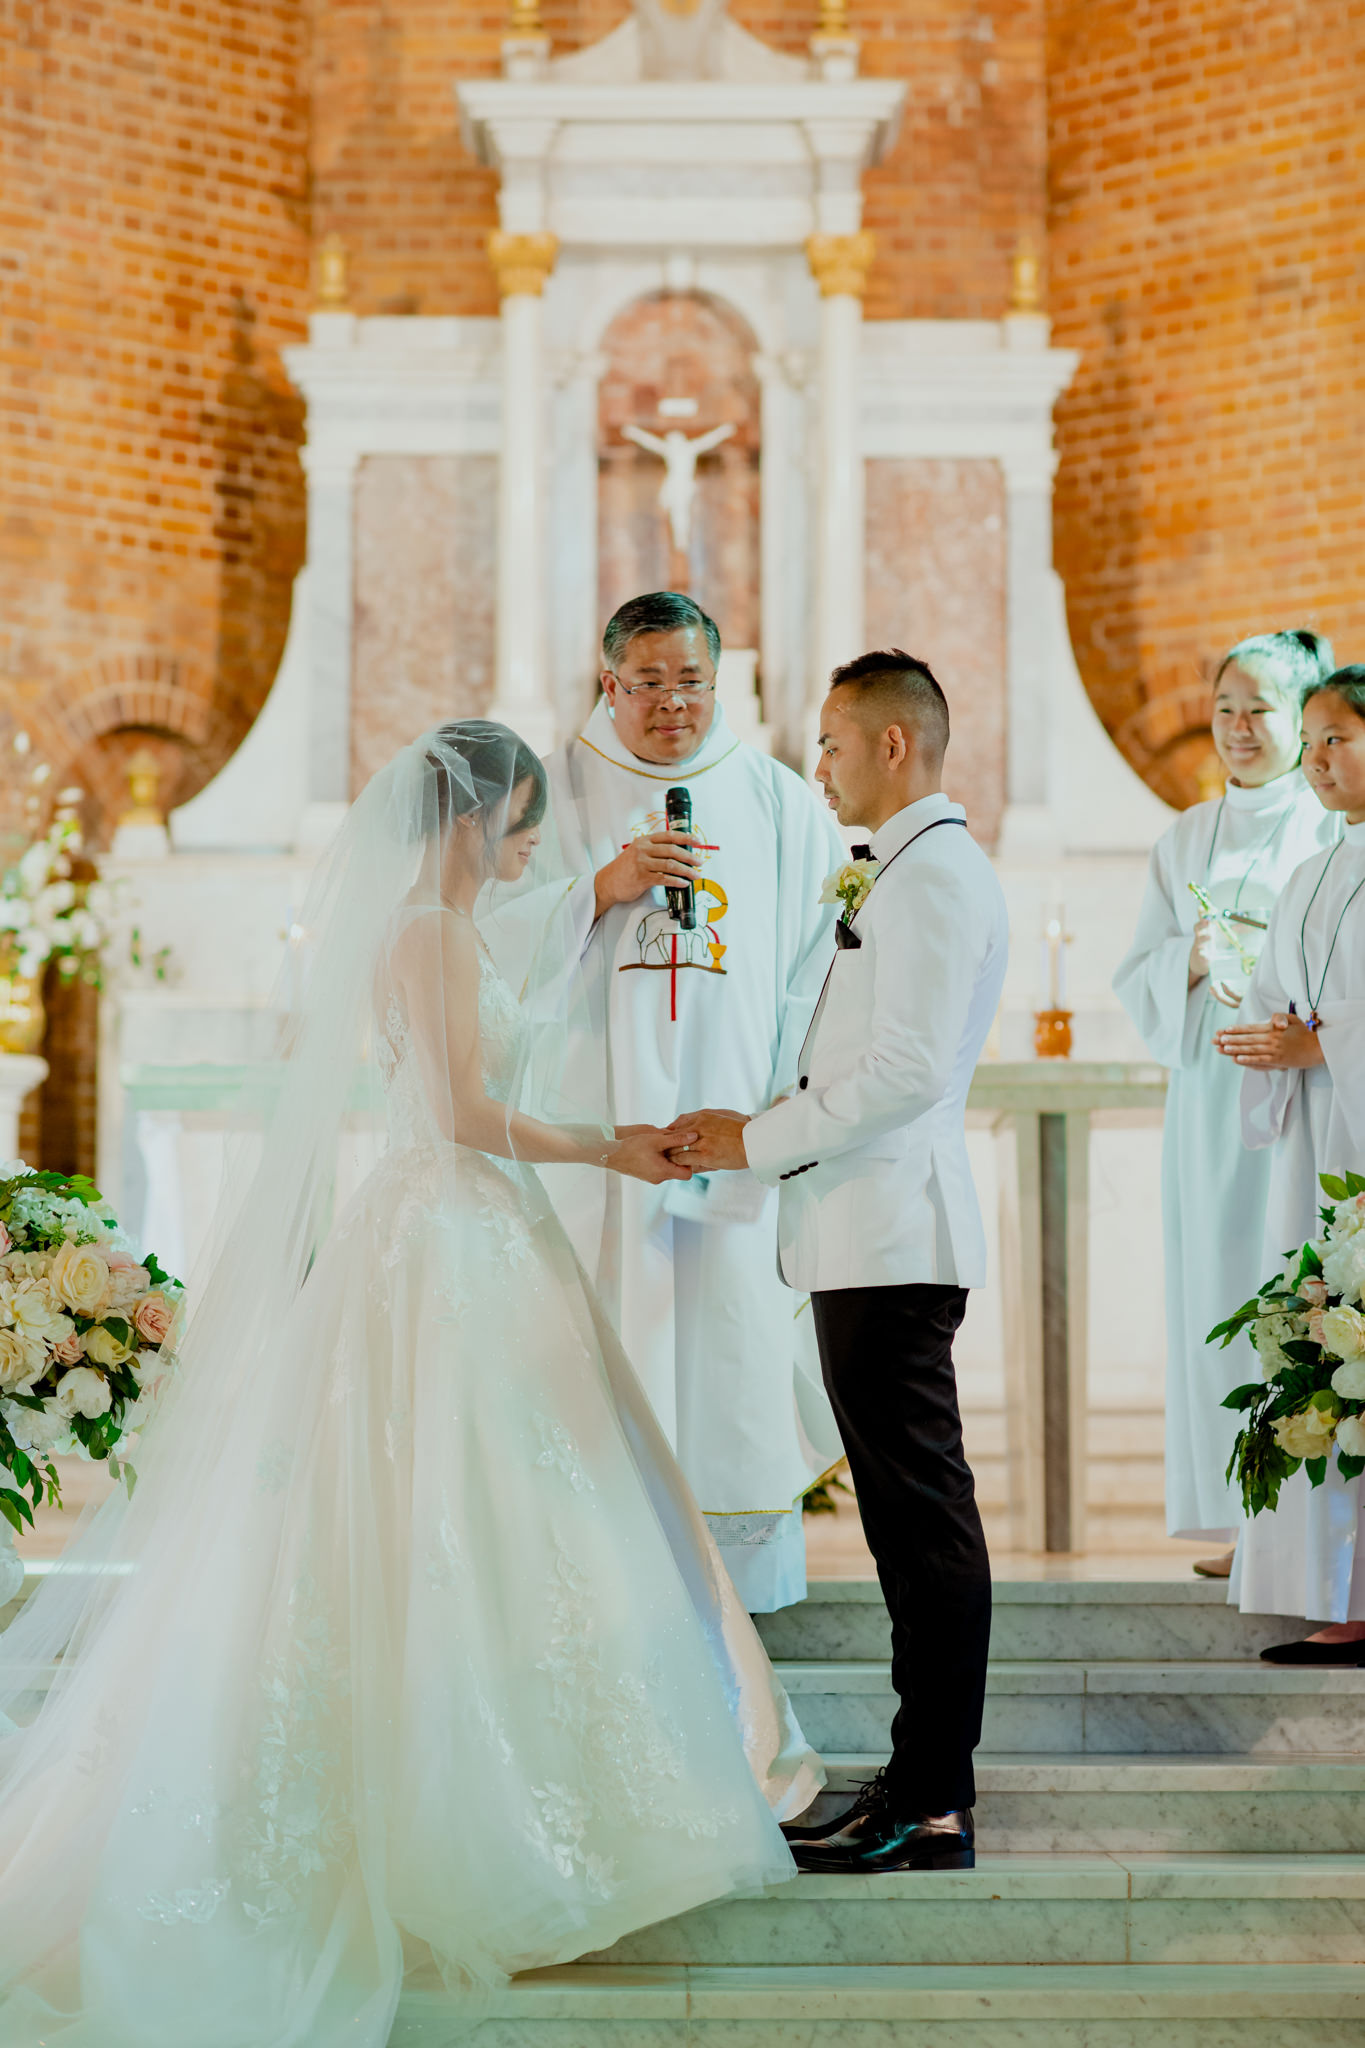 A Vietnamese couple getting married stand at the altar in front of a priest